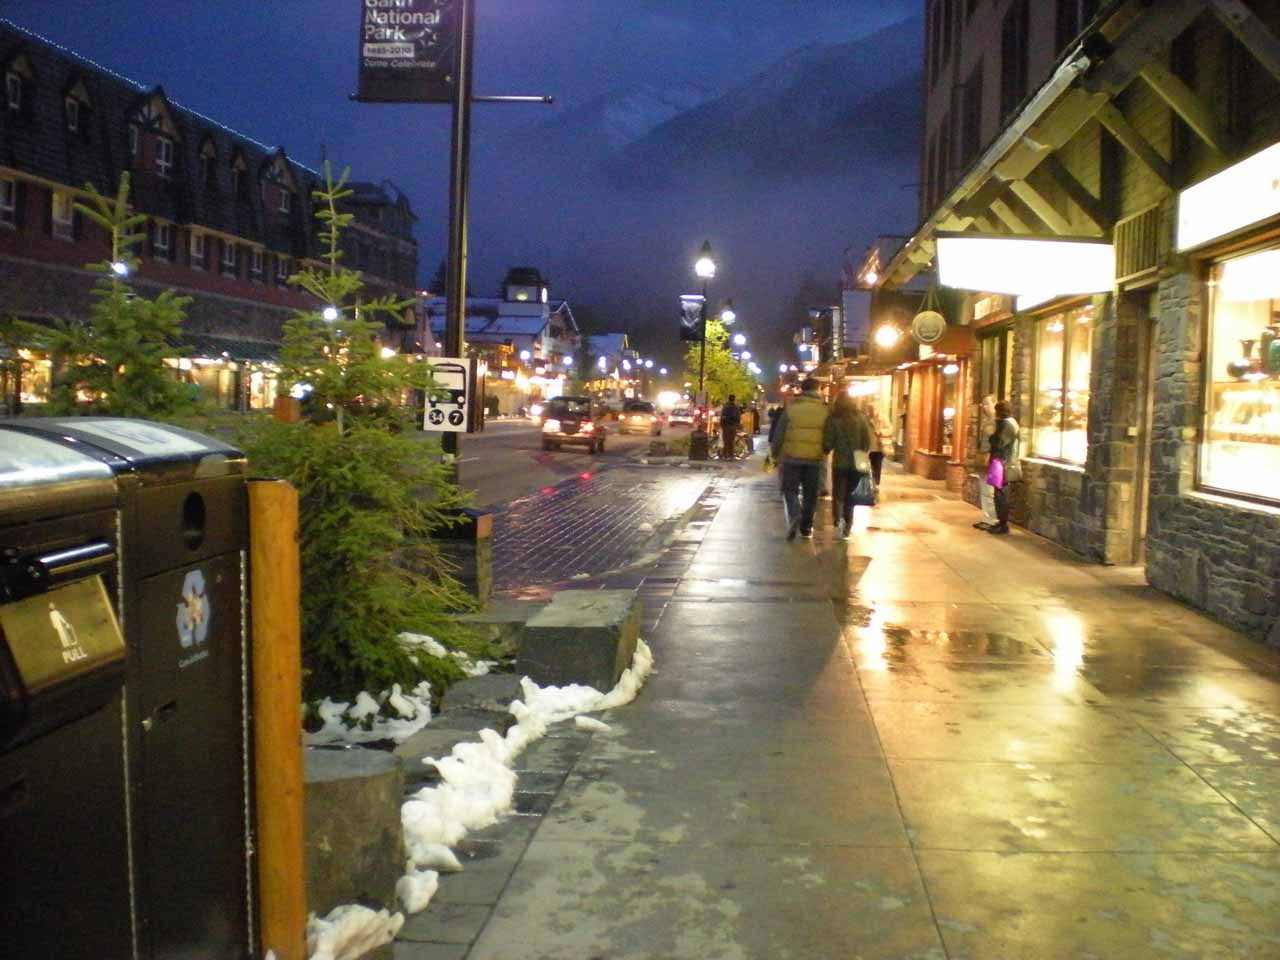 Residual snow still on the sidewalks as we had one last night in Banff Town